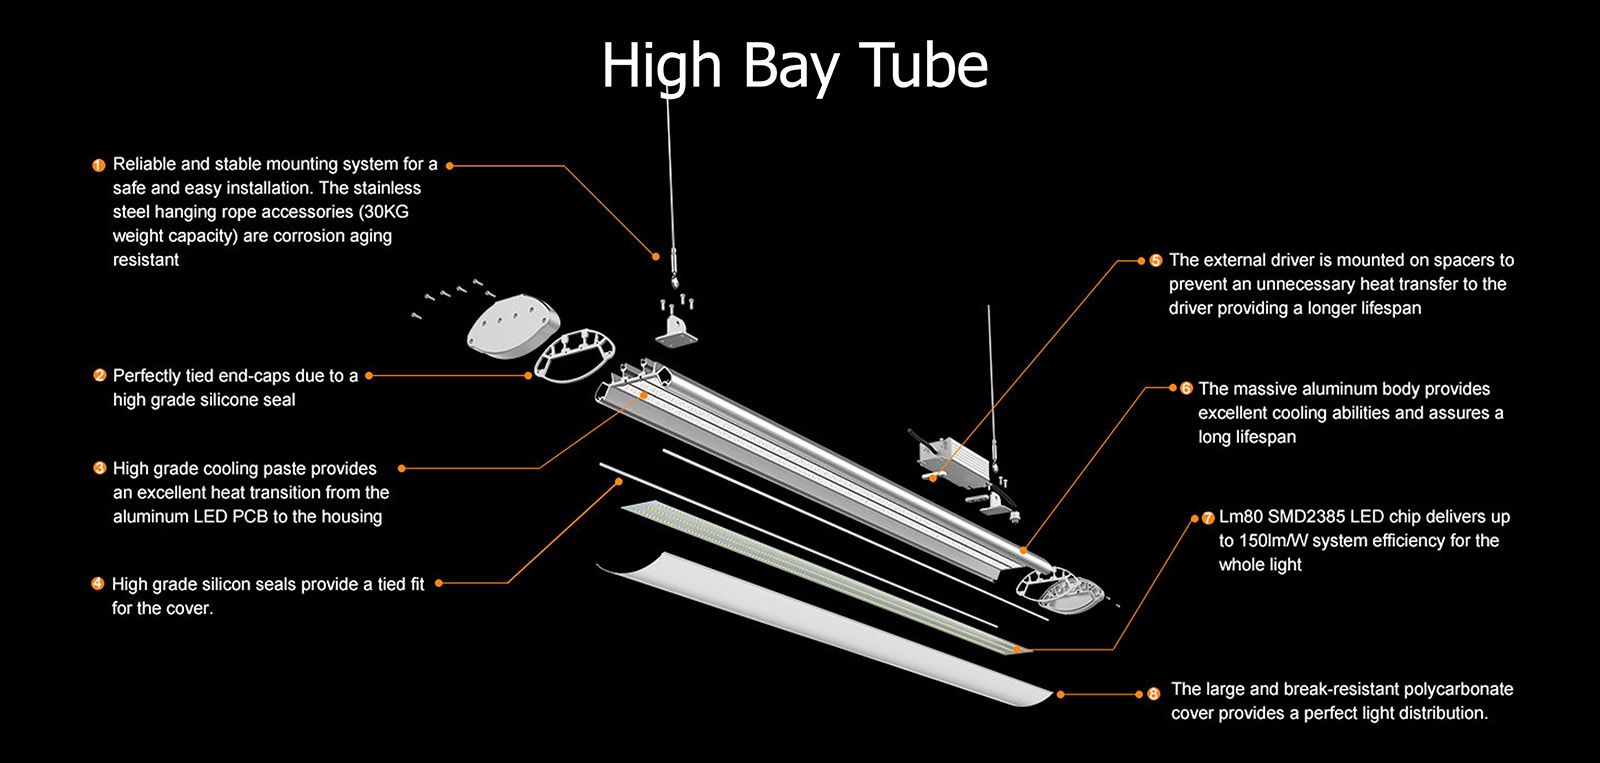 LED high bay tube diagram